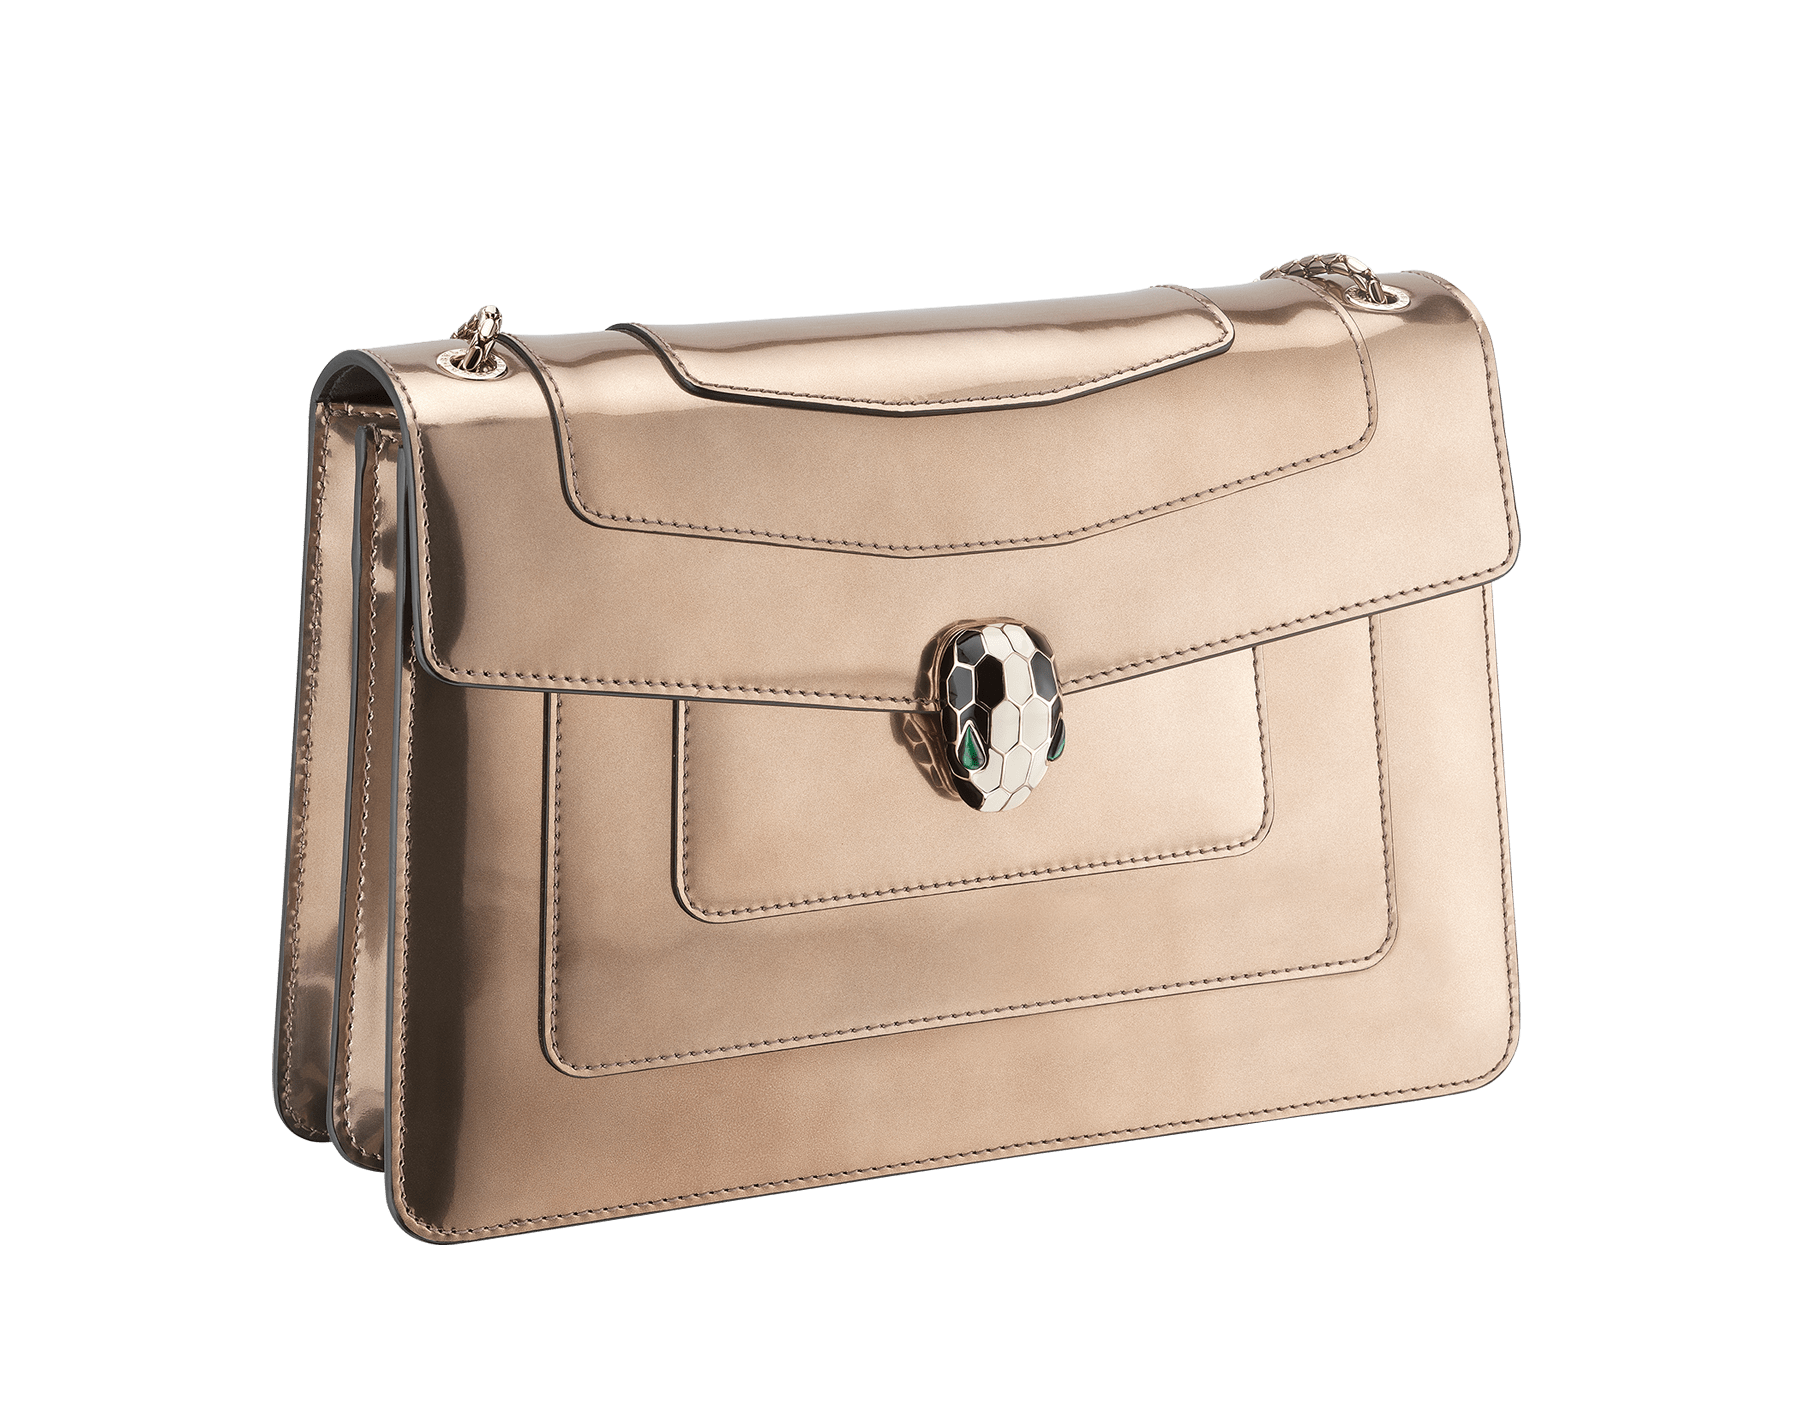 Flap cover bag Serpenti Forever in antique bronze brushed metallic calf leather with brass light gold plated Serpenti head closure in black and white enamel with eyes in green malachite. 39794 image 2